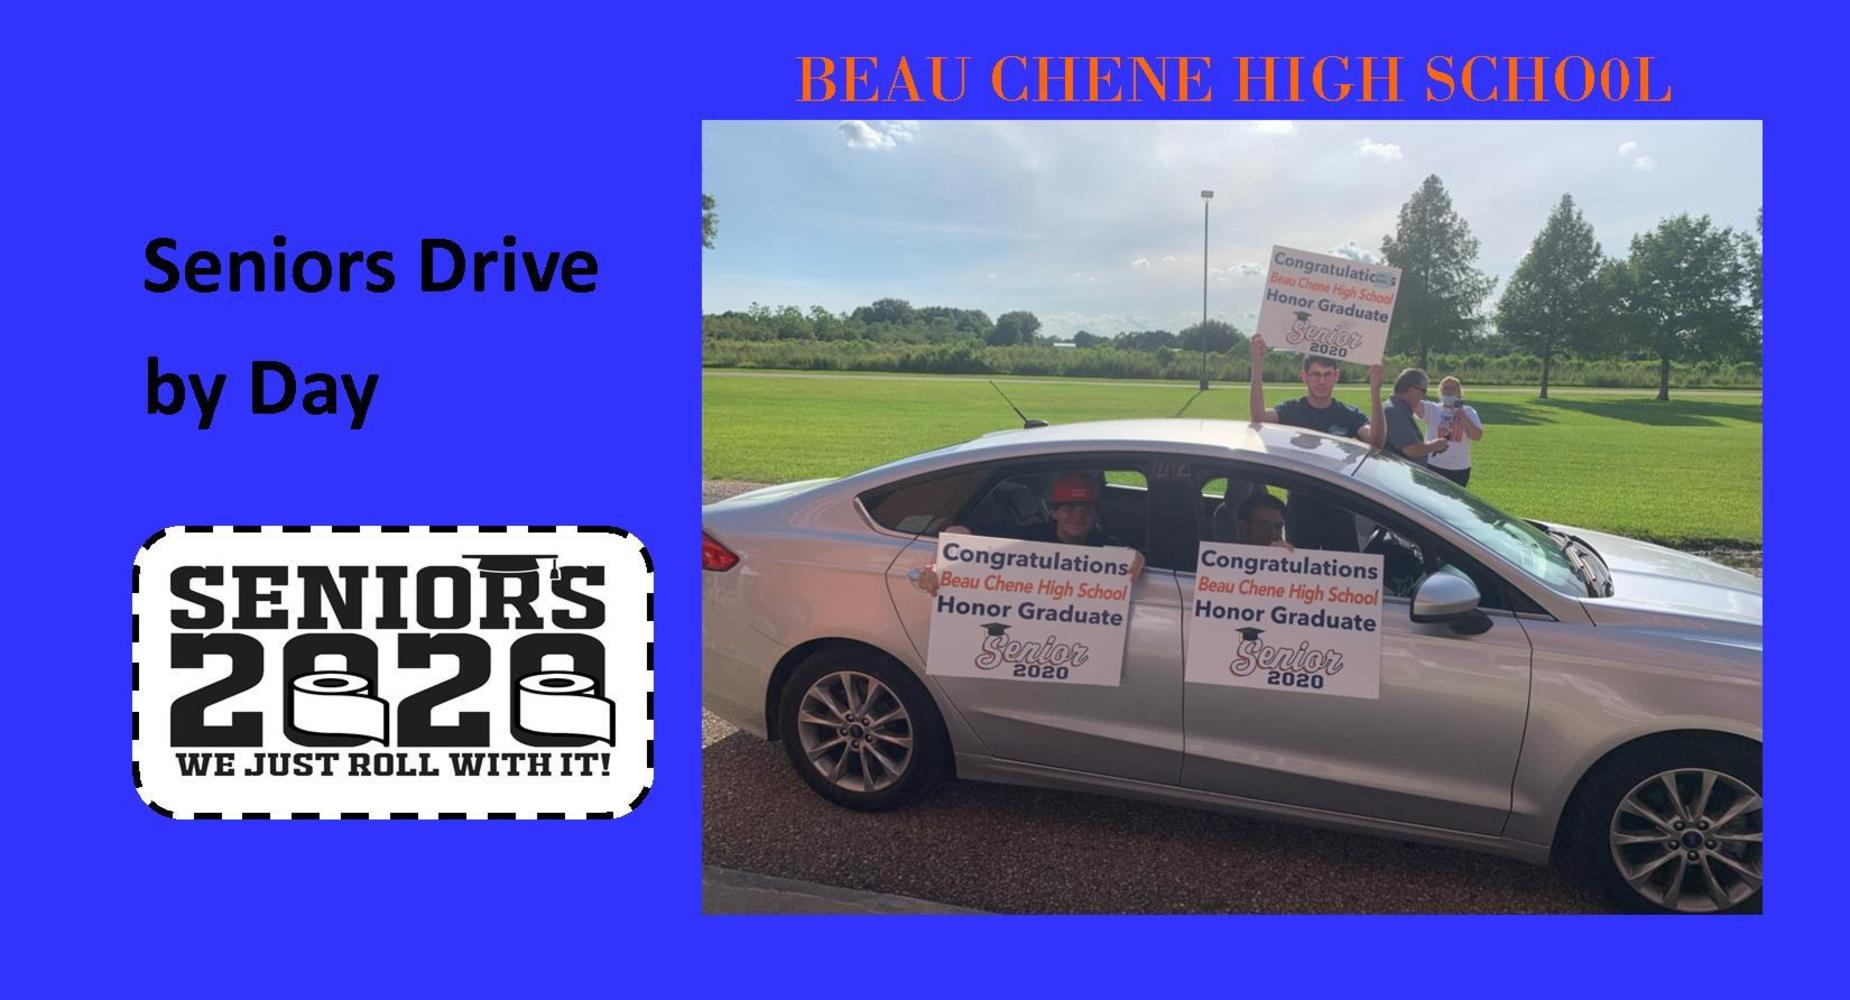 Senior Drive by Day celebration #3